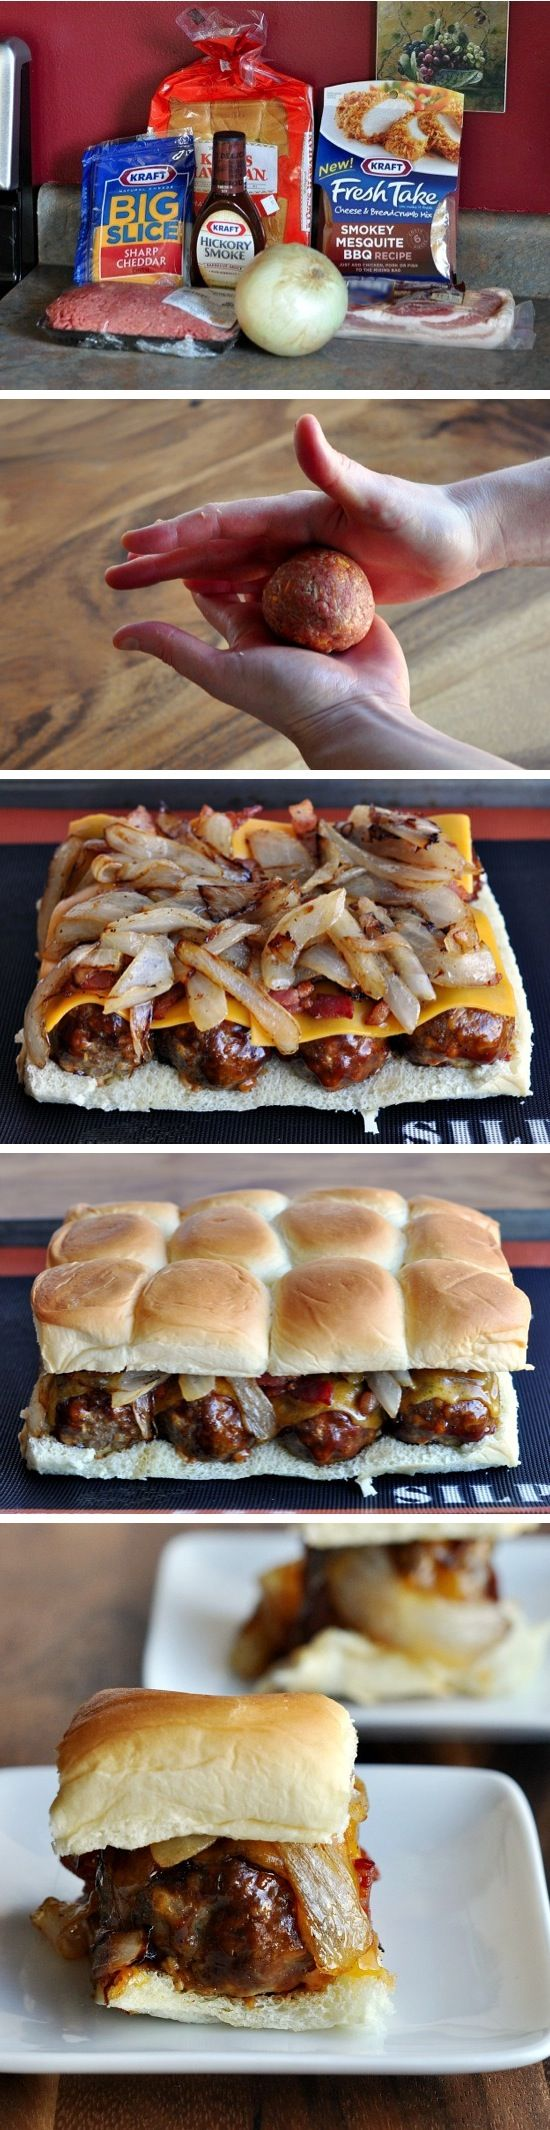 Smokey Mesquite BBQ Meatball Sliders | So easy to pull together for lunch or dinner. The whole family will love!